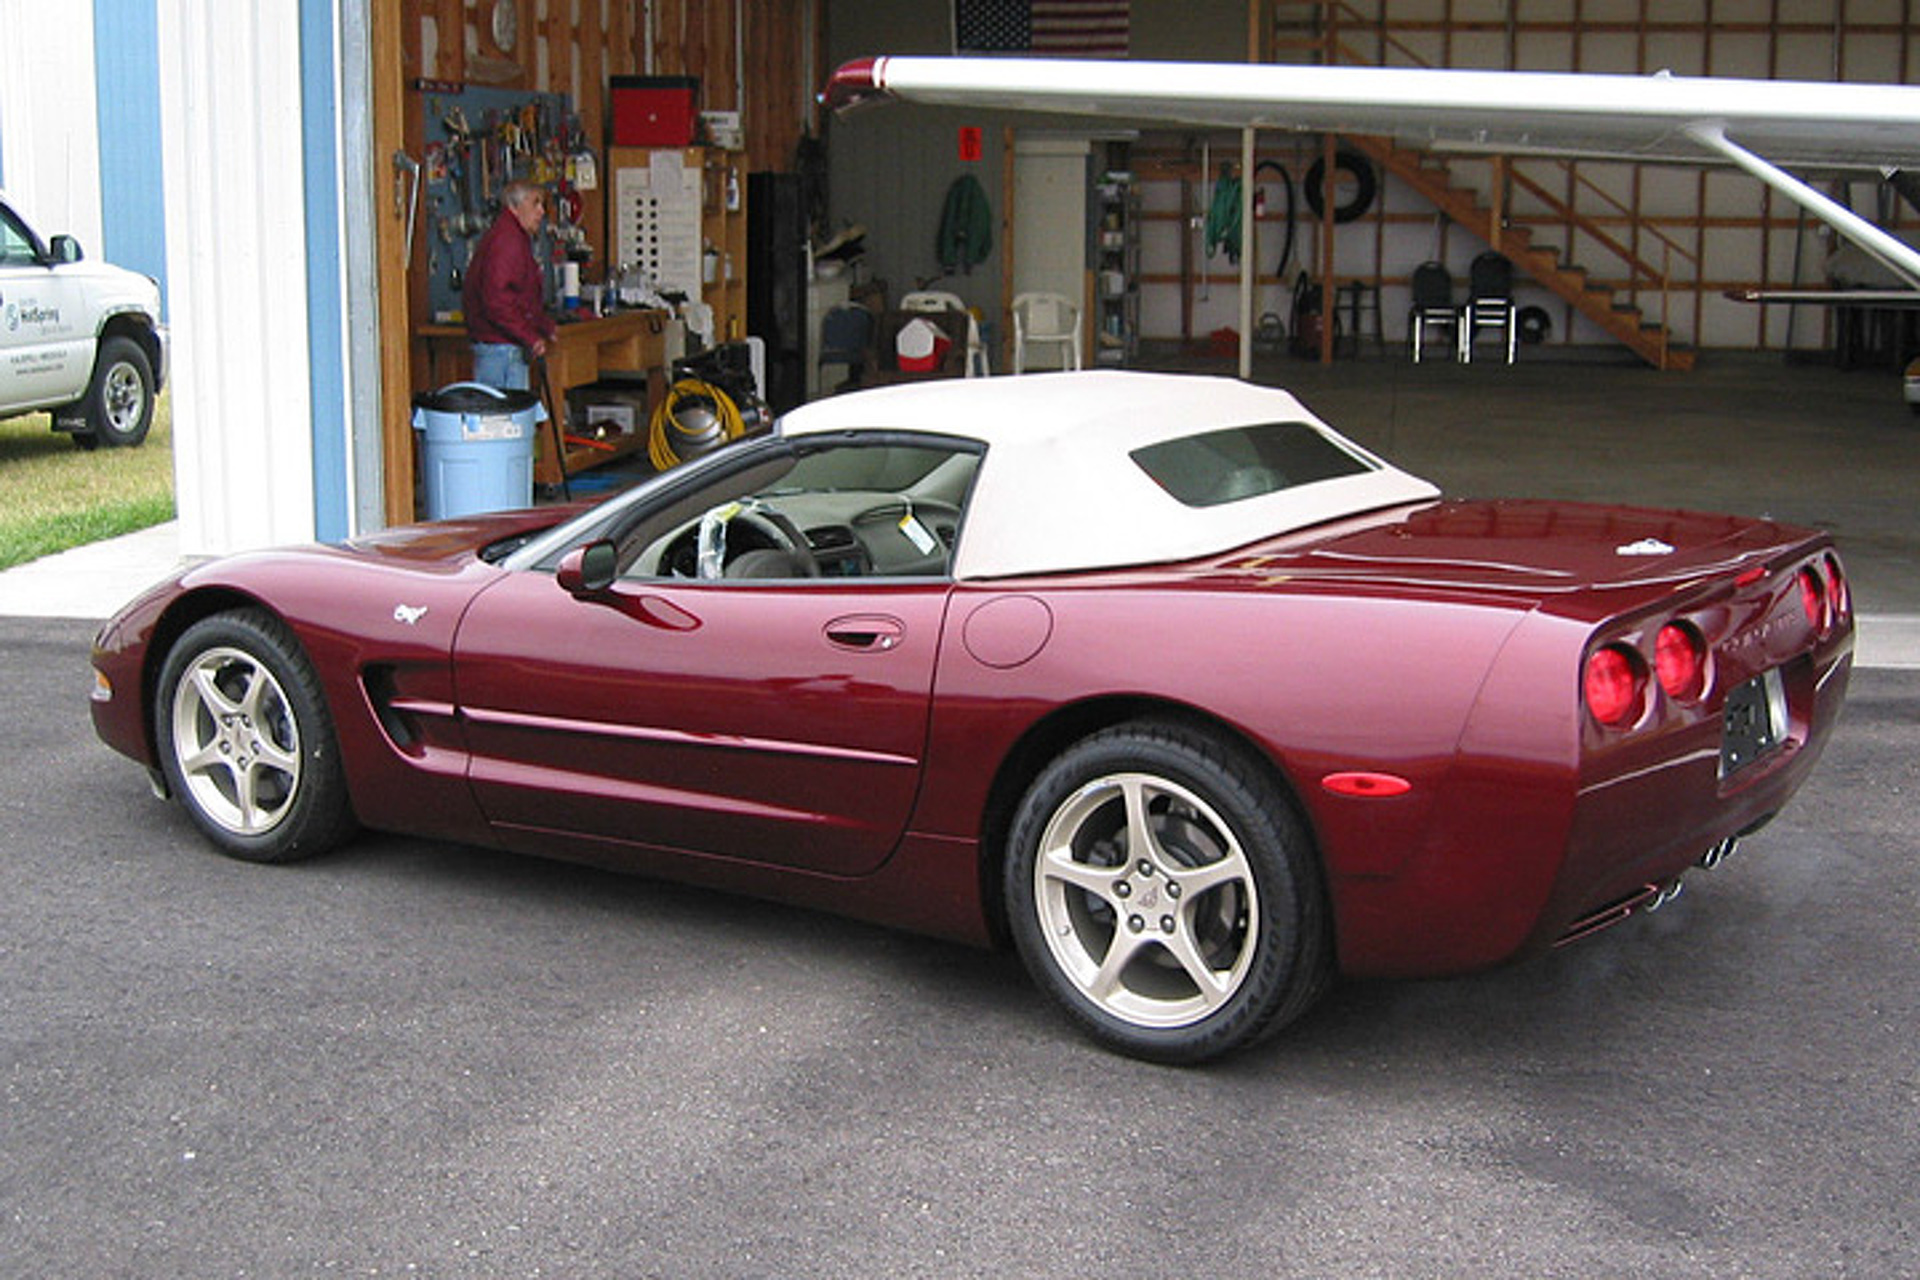 With Only 57 Miles, This is Essentially a Brand New 2003 Corvette